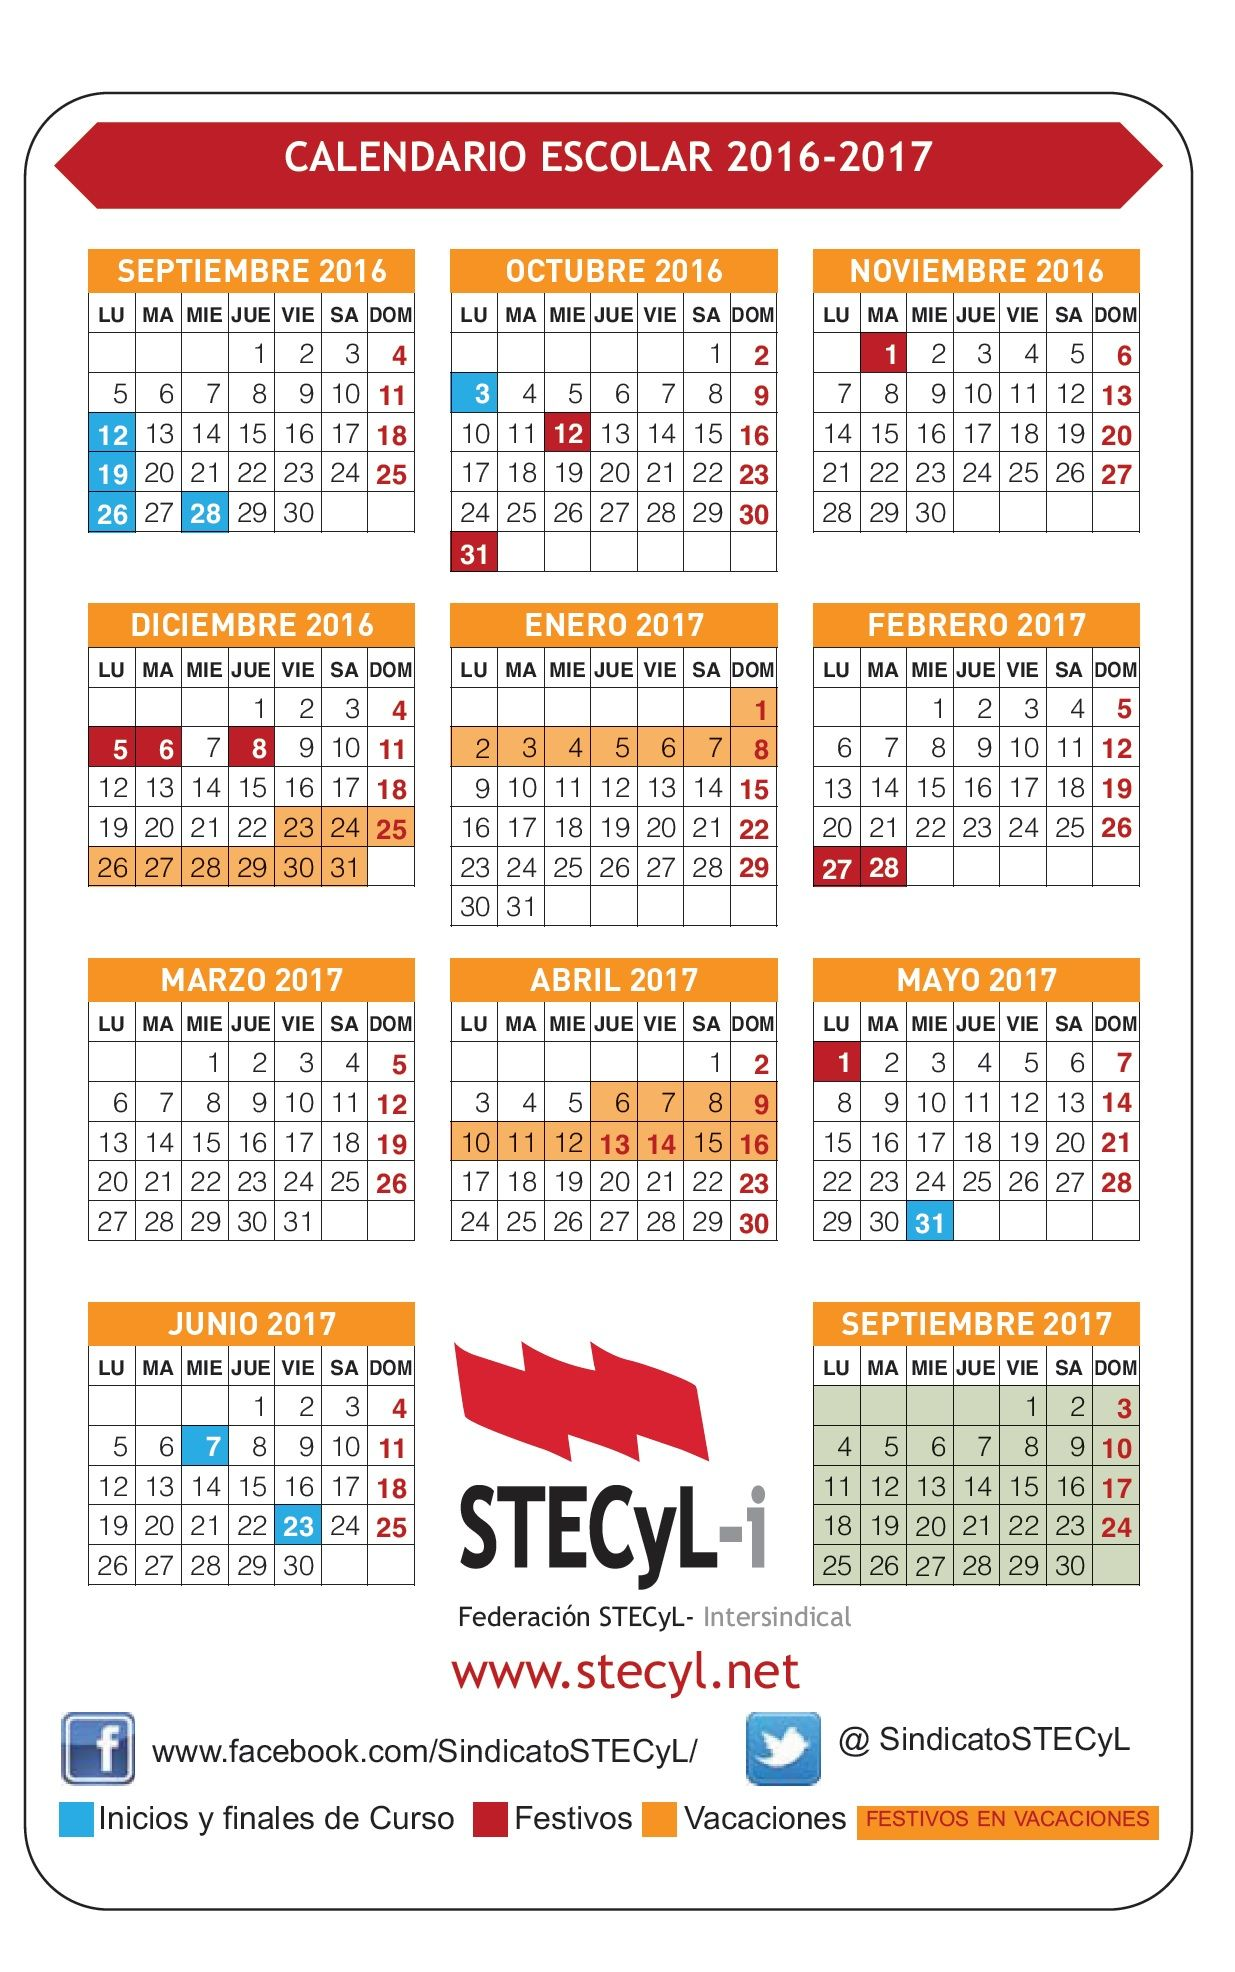 Calendario Escolar 2016 17 Enseñanzas No Universitarias Cyl